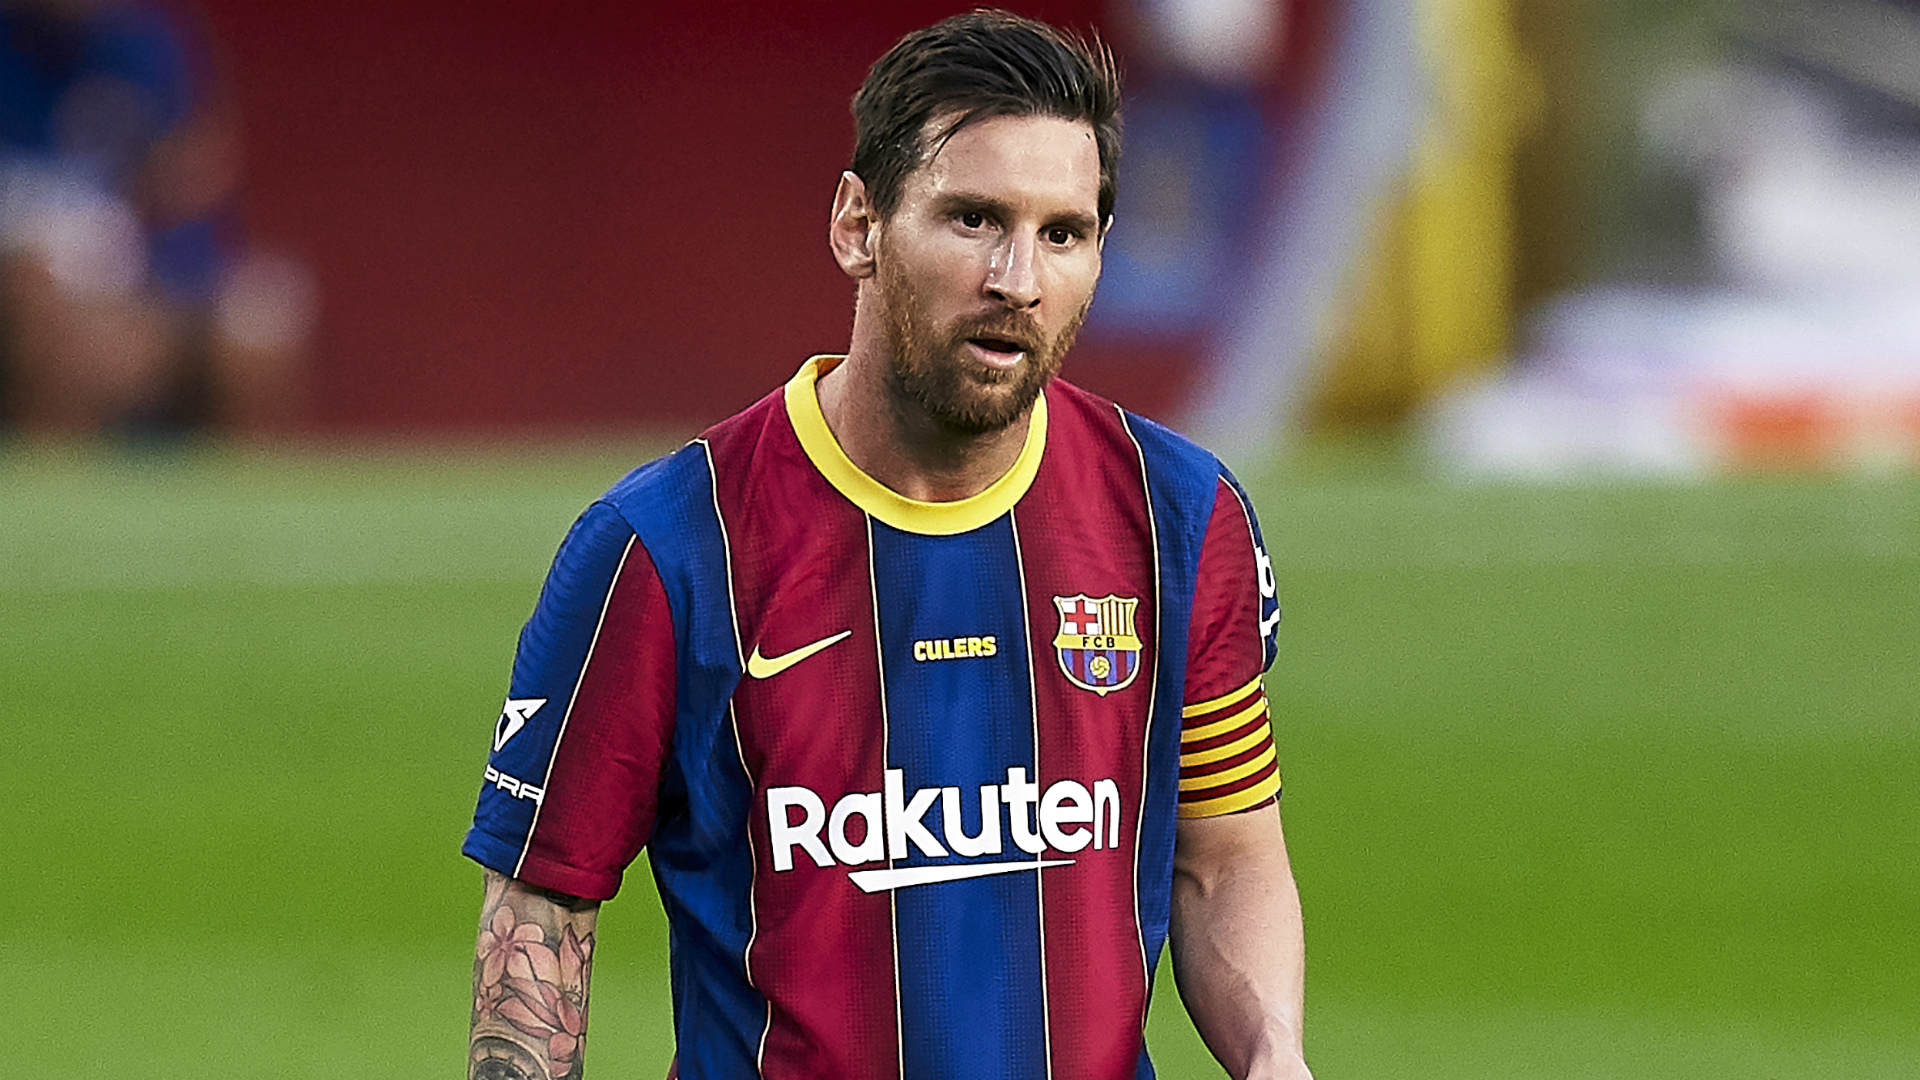 El Clasico: Messi's long goodbye to the world's greatest club match